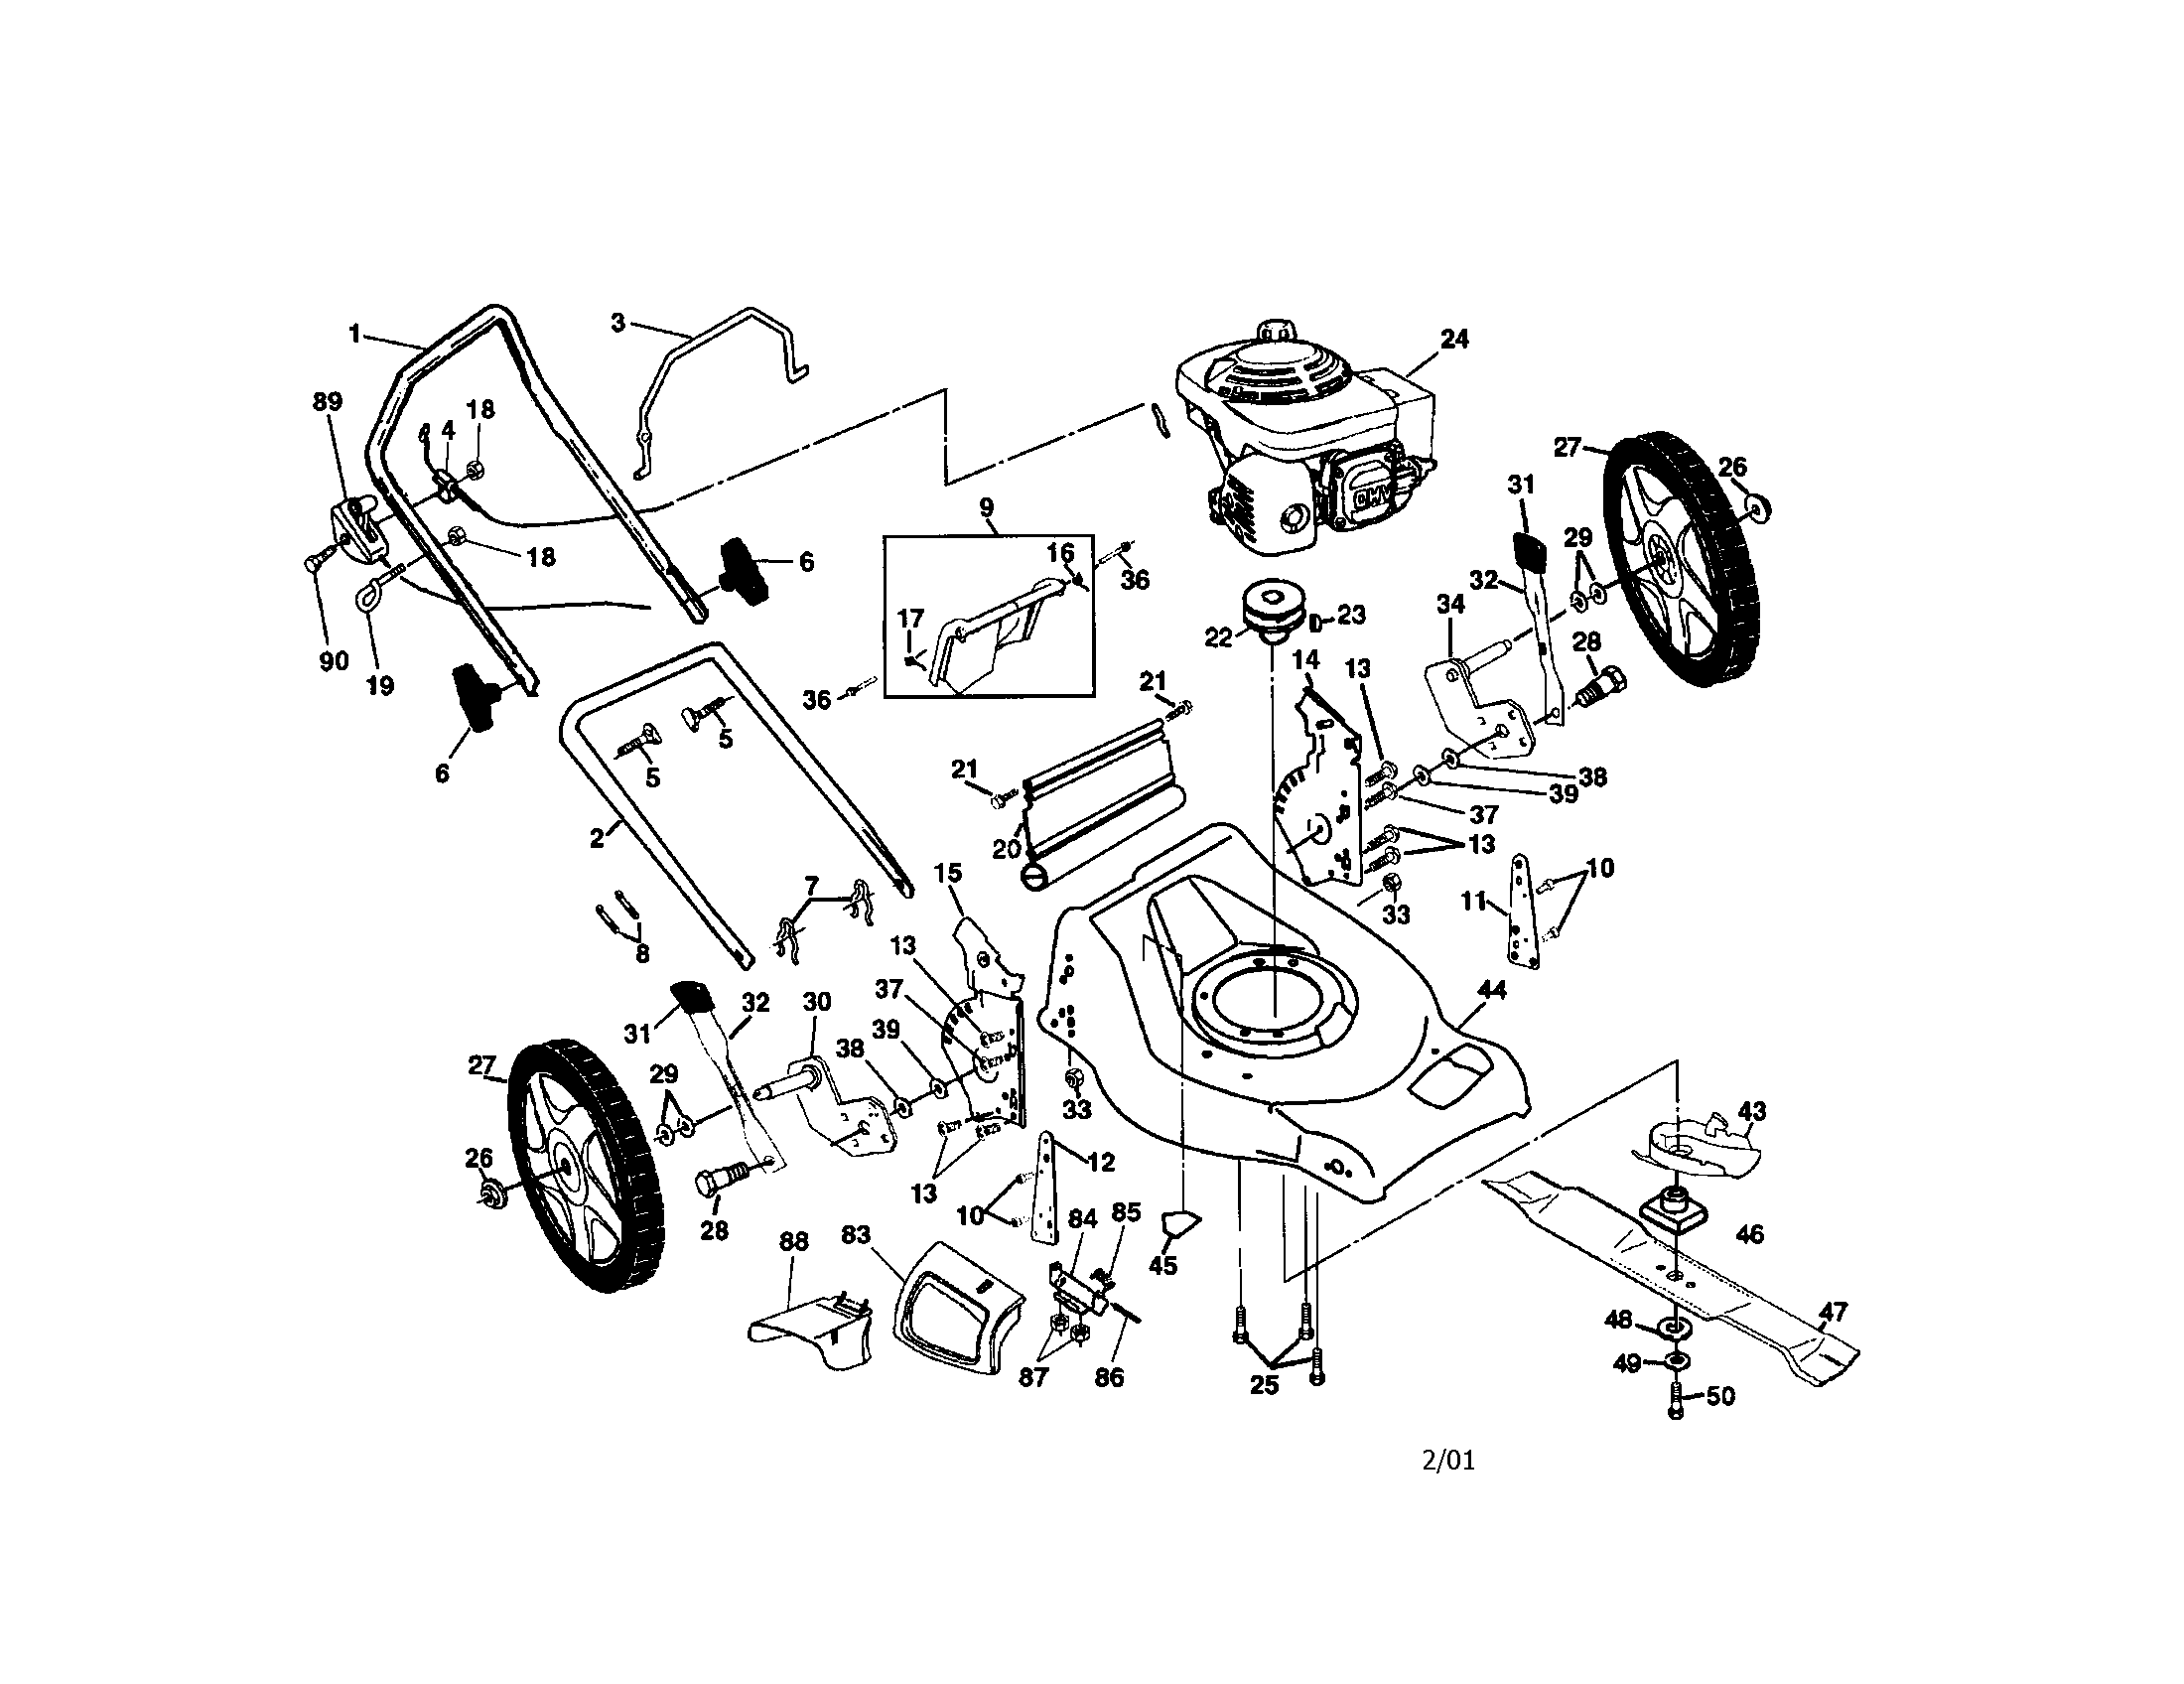 Honda Small Engine Parts Diagram